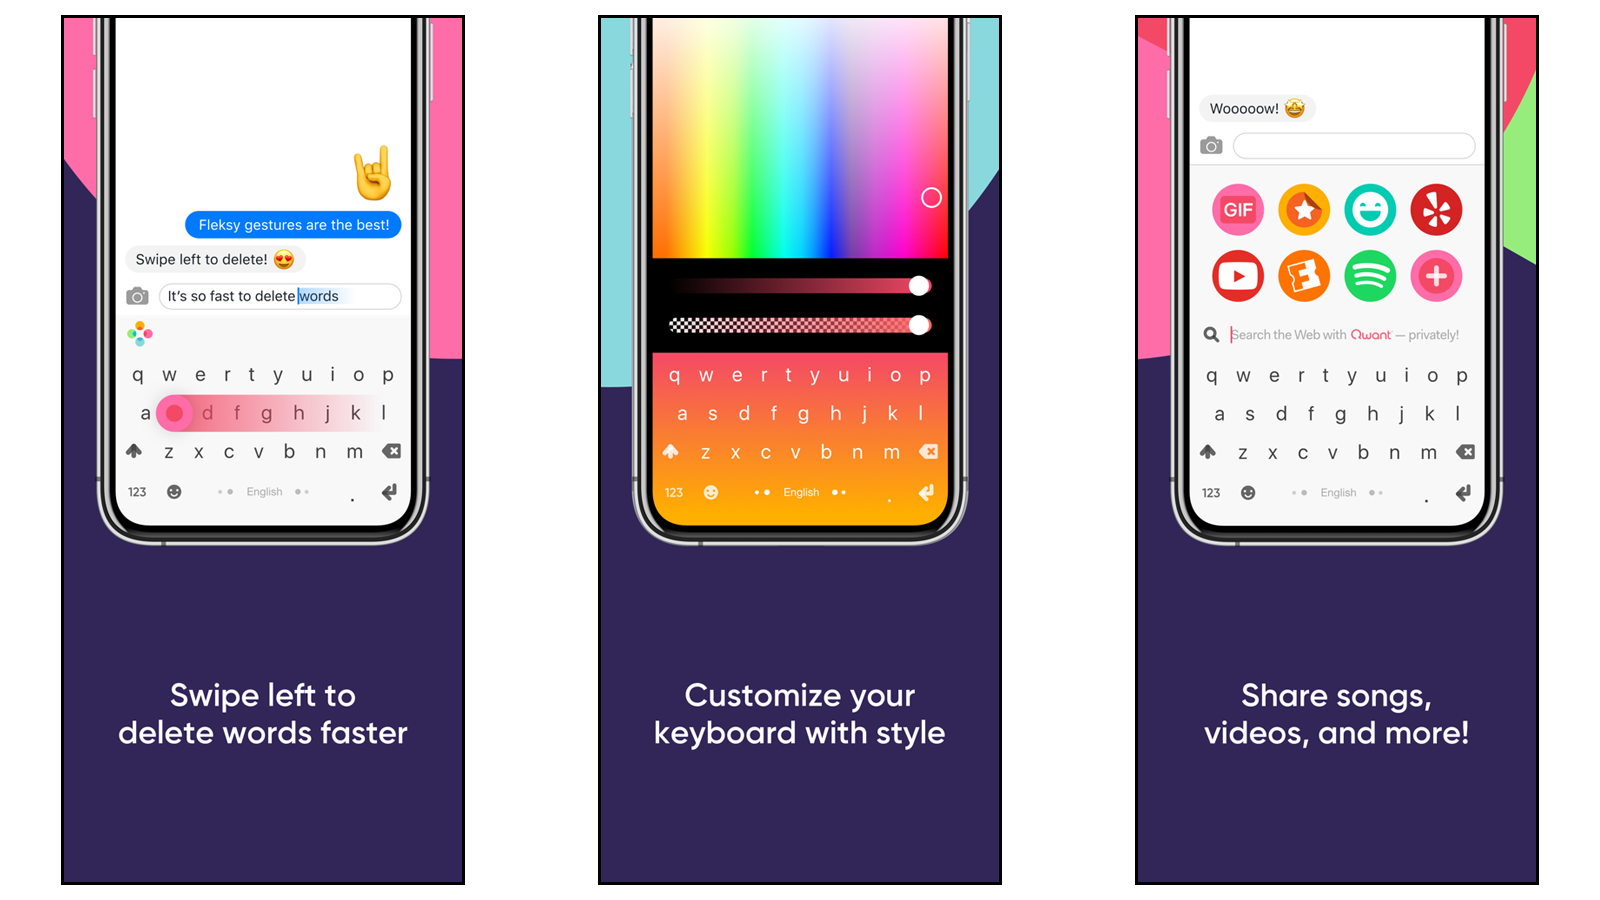 Fleksy keyboard for privacy, speed, and pretty customization